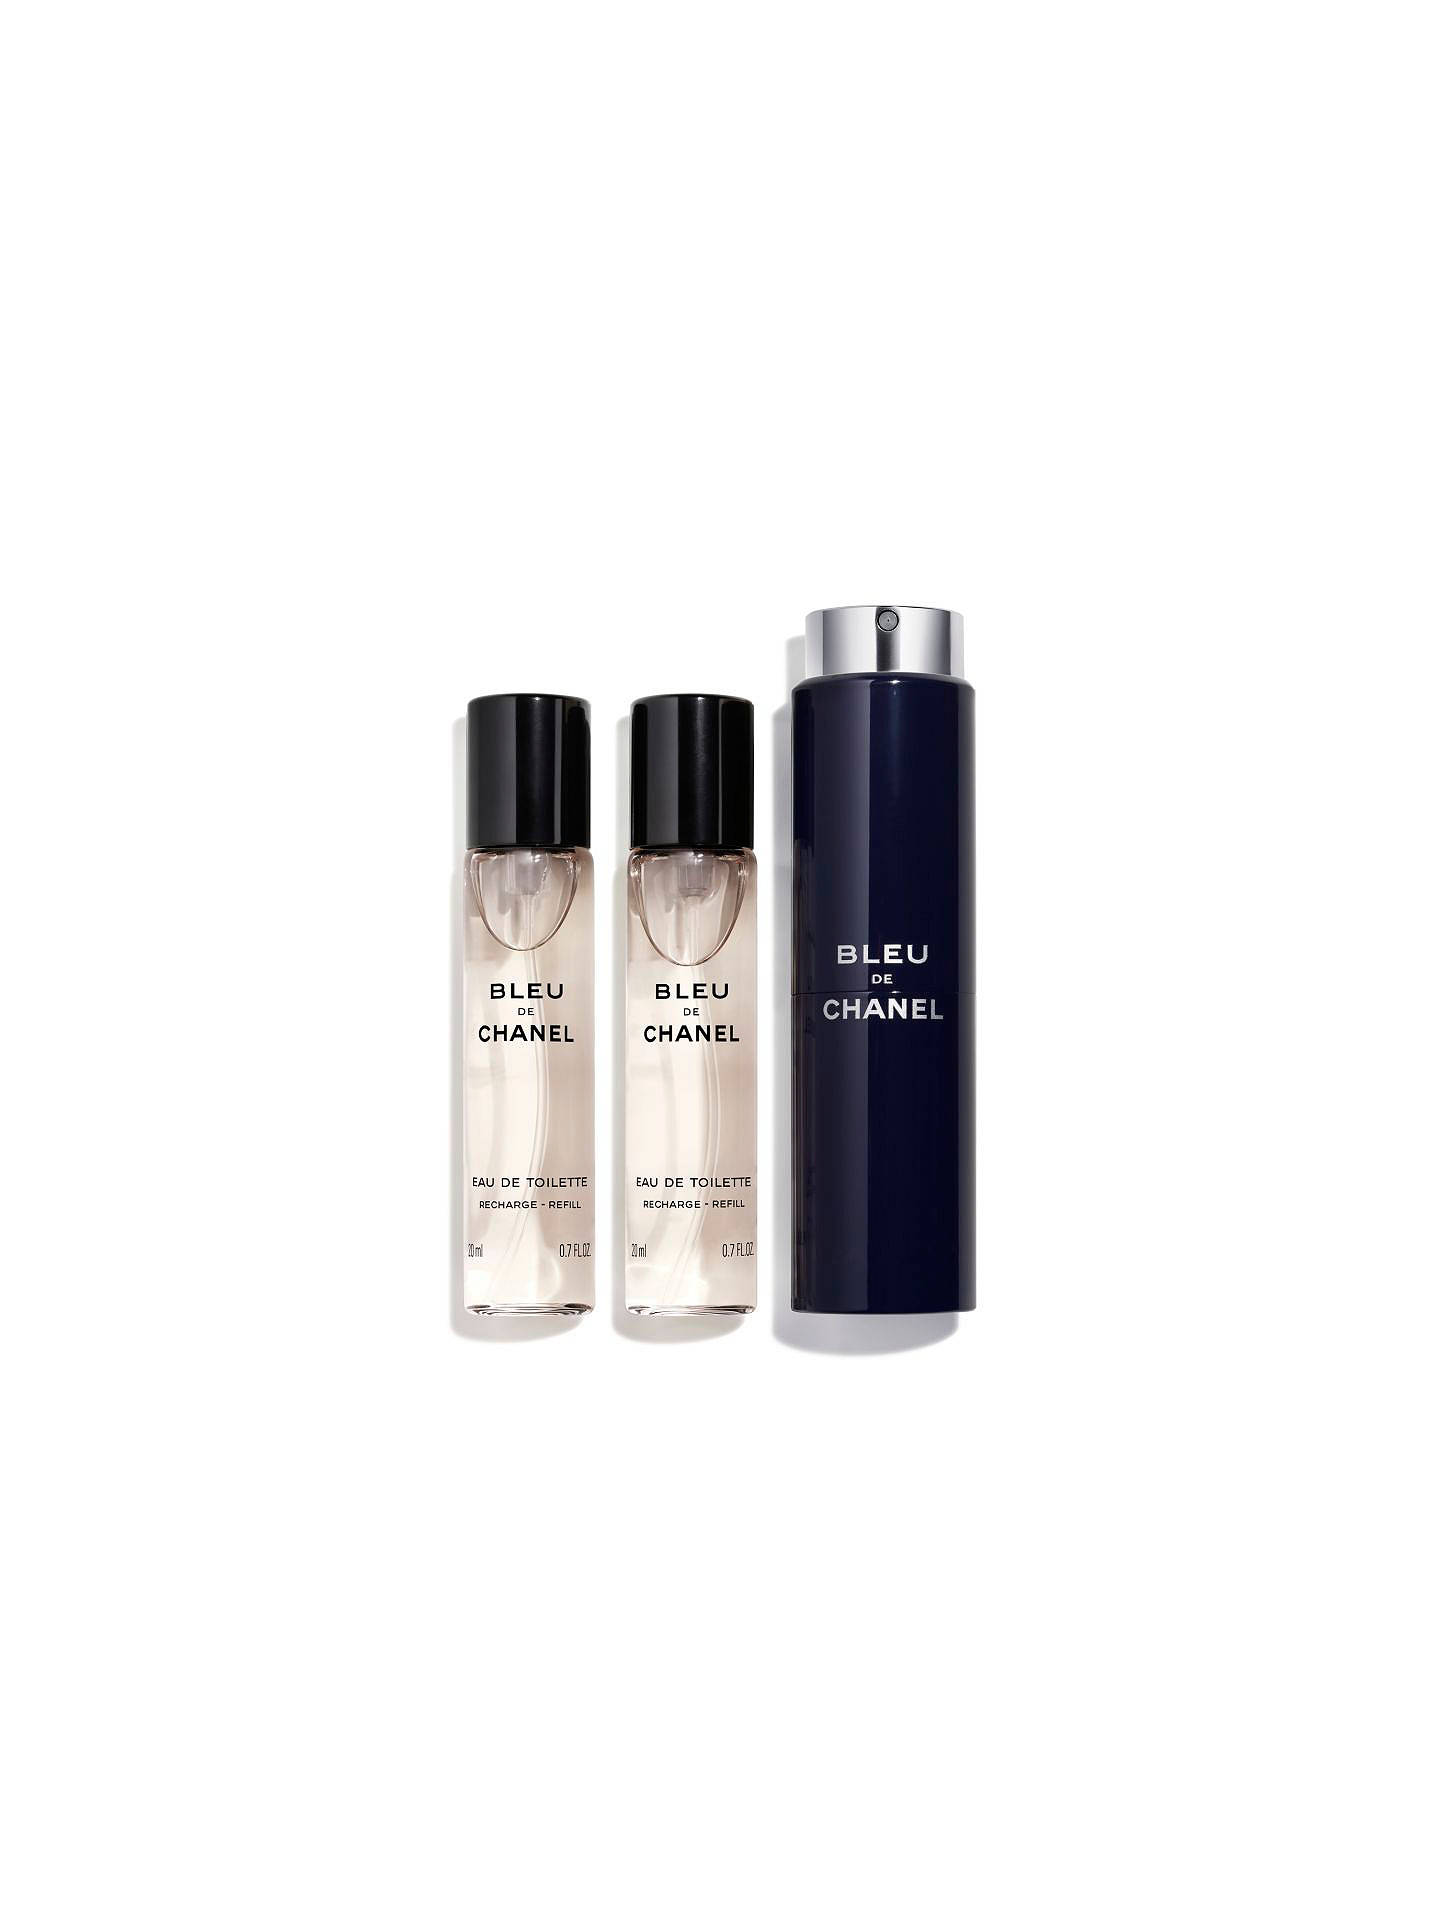 ea0a7f44145b5 Buy CHANEL BLEU DE CHANEL Refillable Travel Spray 3 x 20ml Online at  johnlewis.com